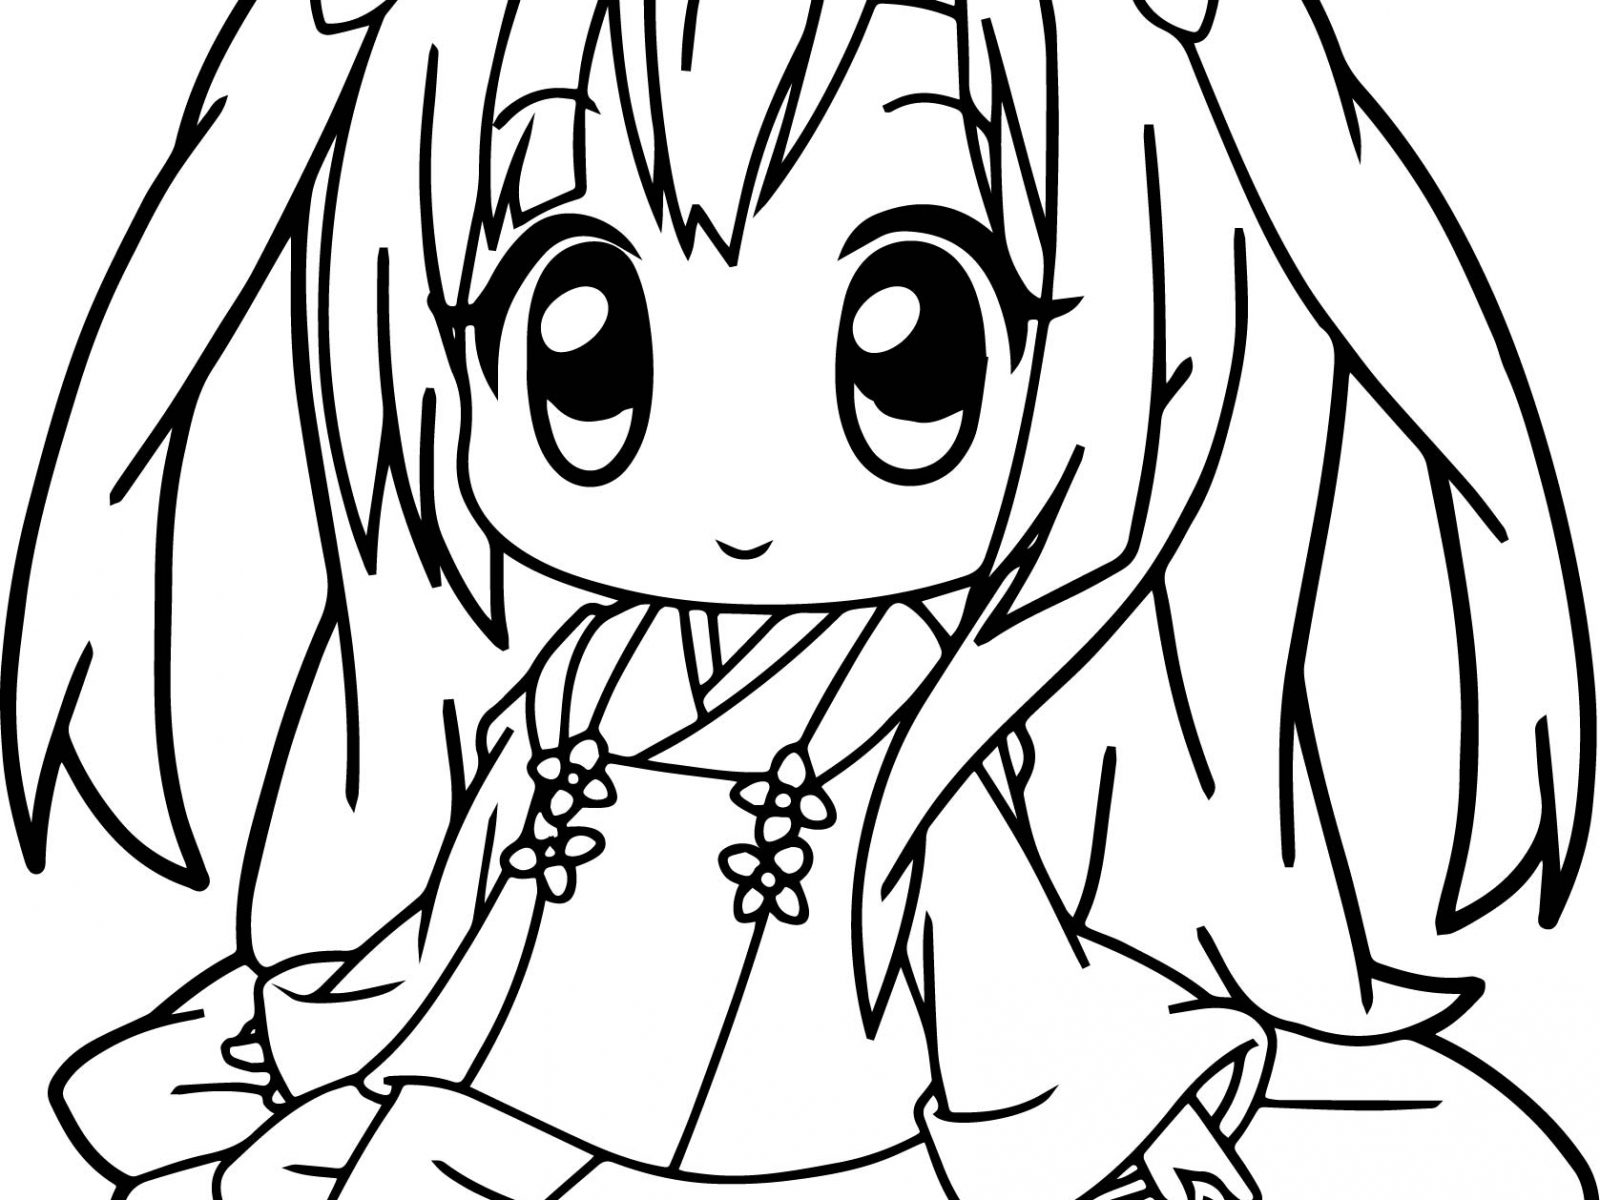 1600x1200 Anime Coloring Pages For Kids Wolf Girl Adults Online High Quality